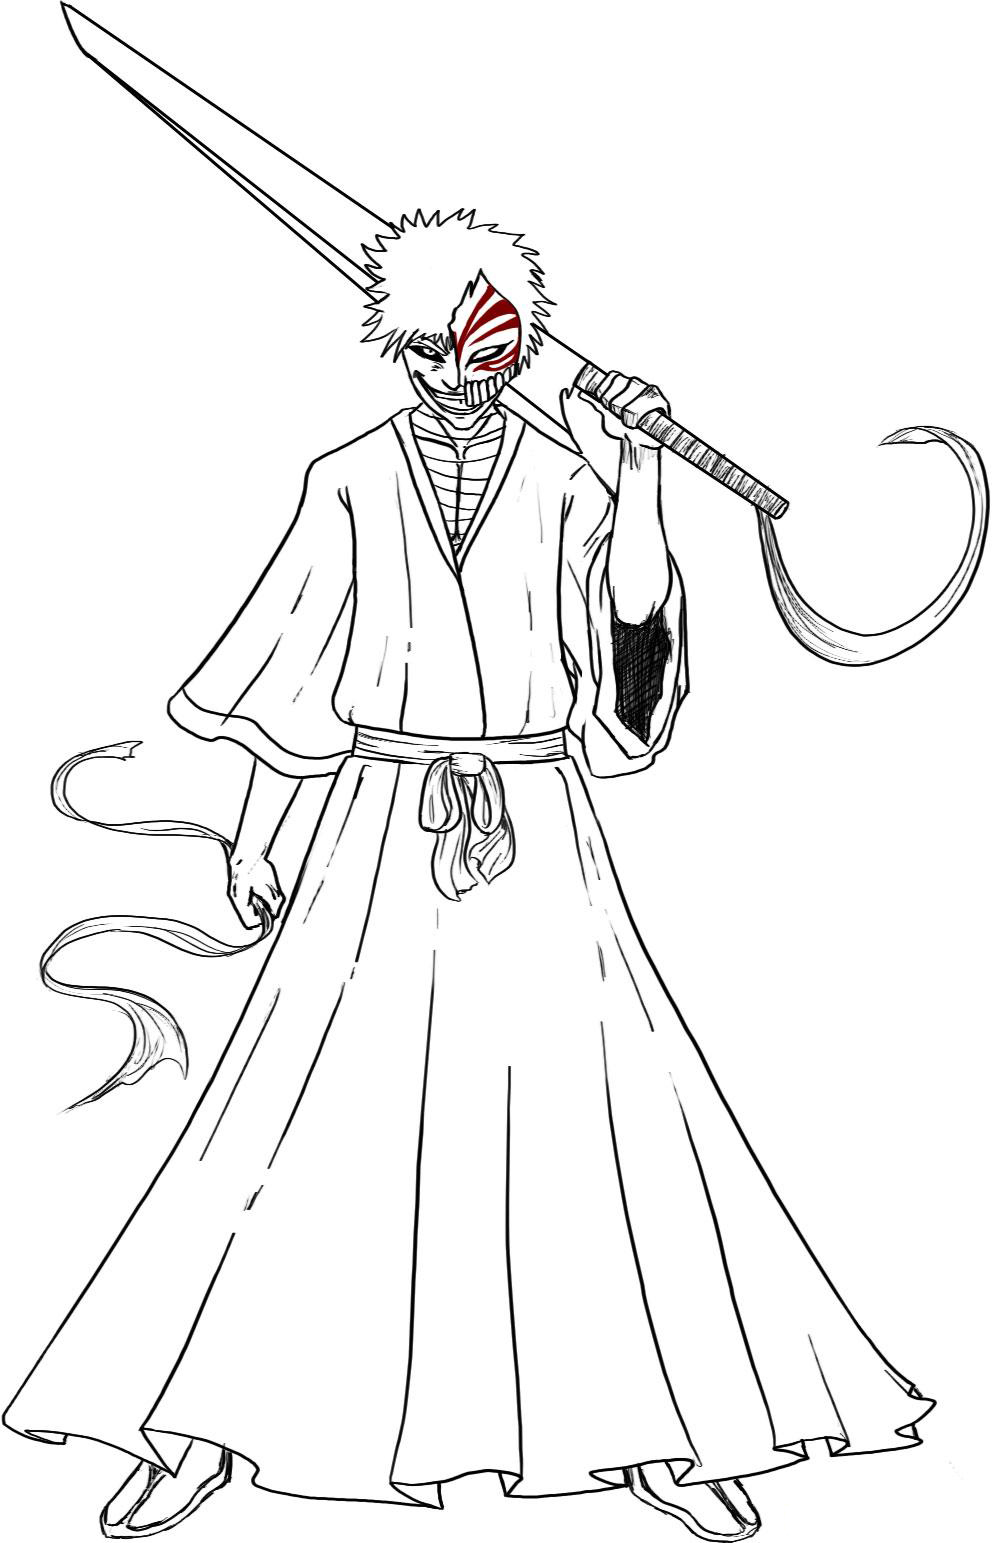 Bleach Coloring Picture 5